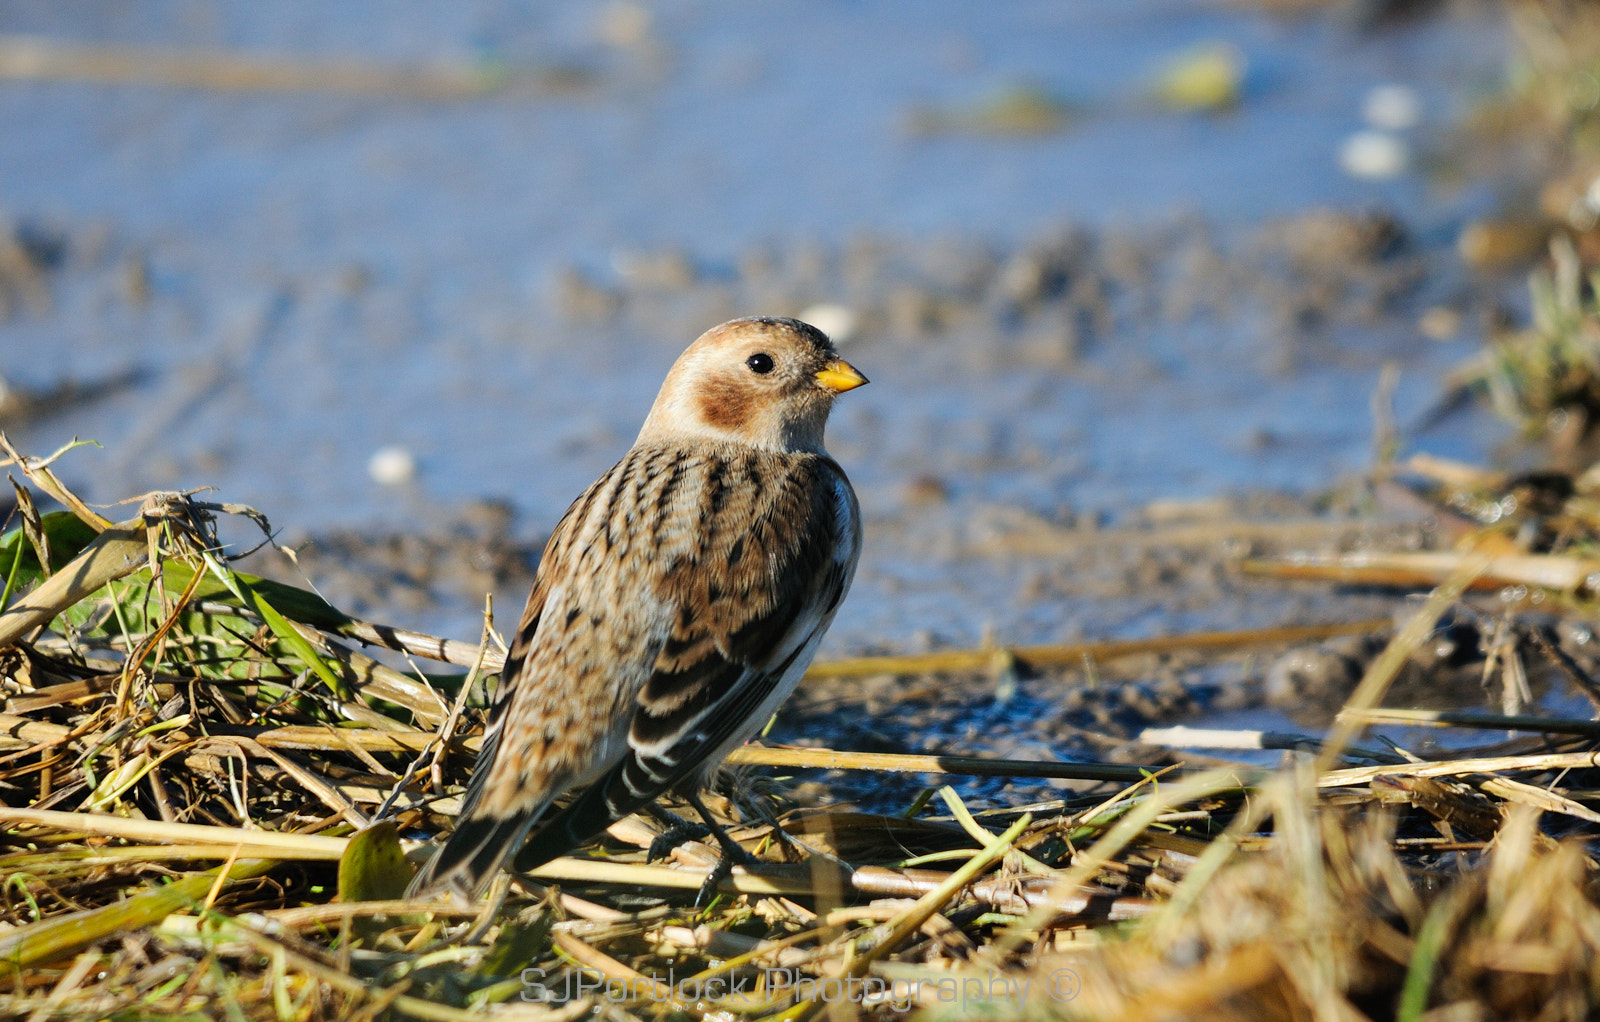 Photograph Snow Bunting  by Stephen Portlock on 500px